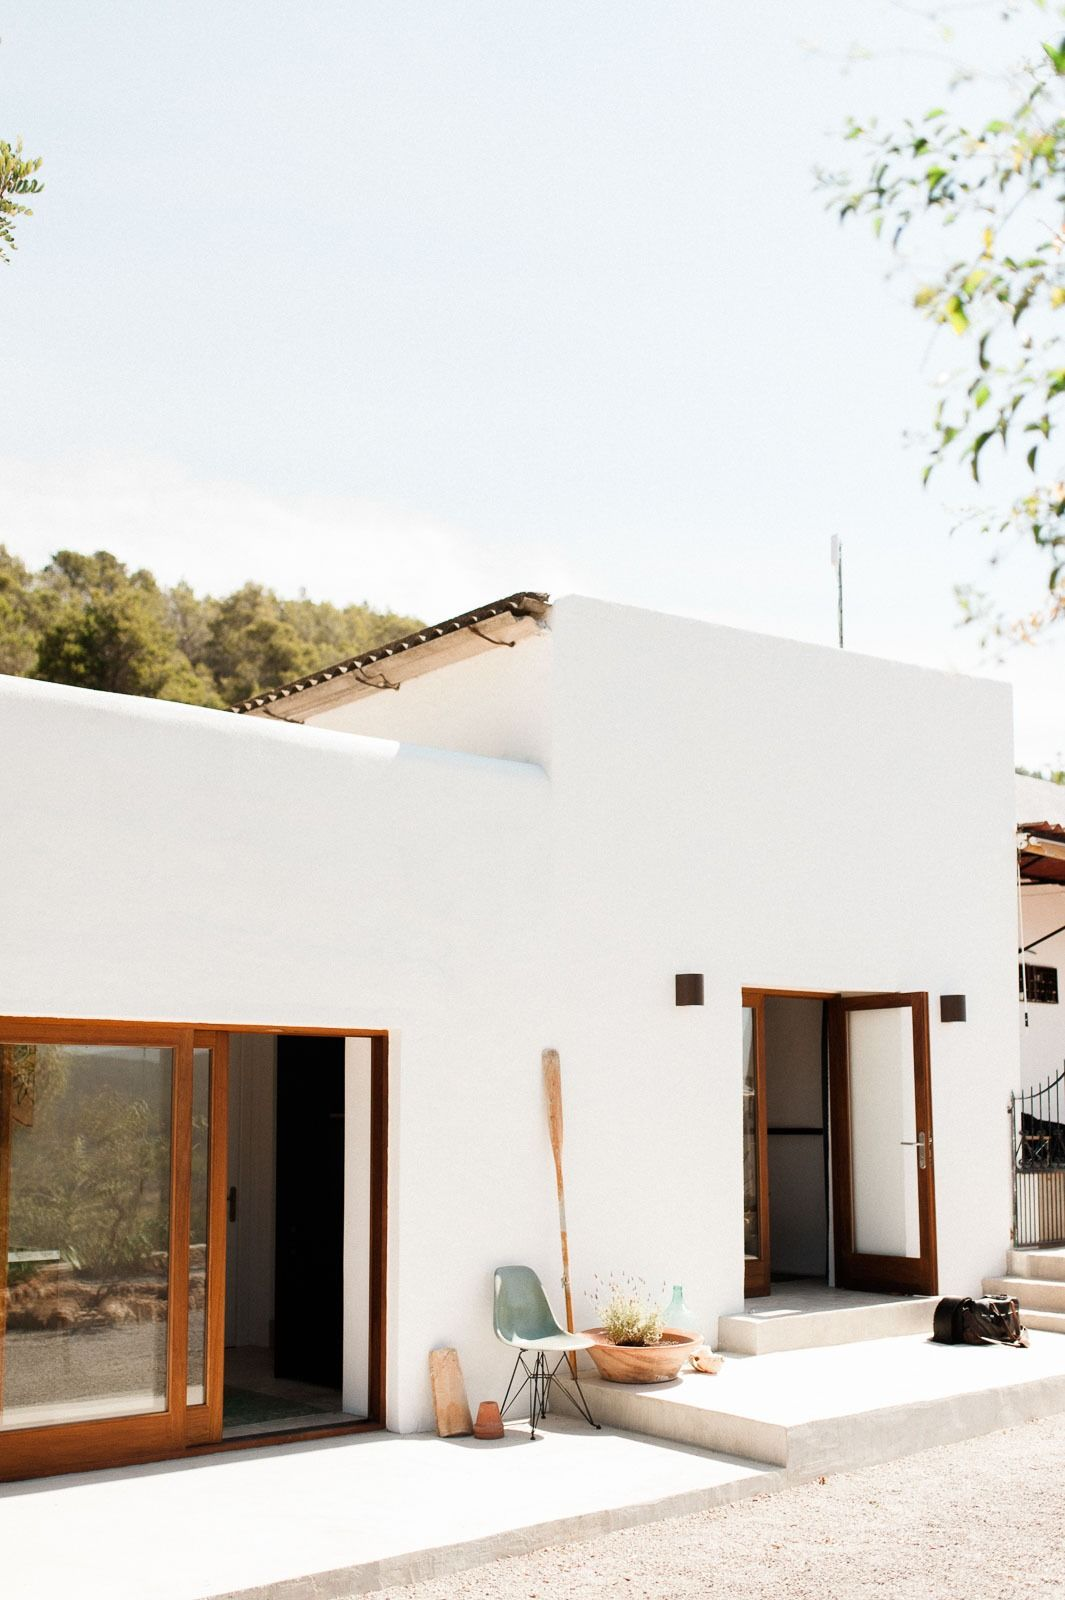 On a mountain in the rugged north of Ibiza, lies this beautiful casita.